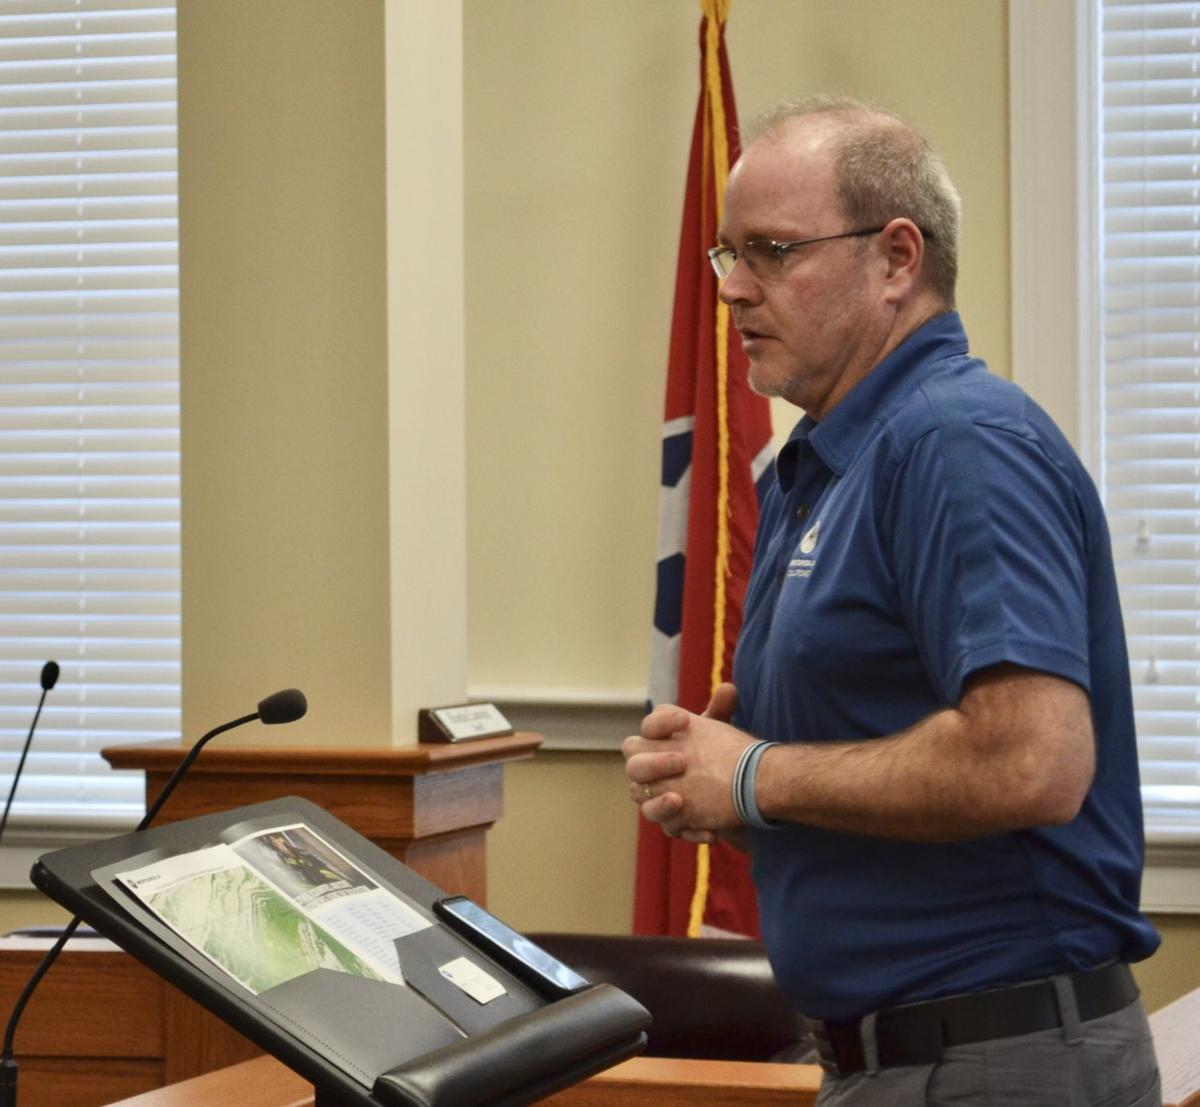 County will soon have official cost quote for replacement emergency communications equipment